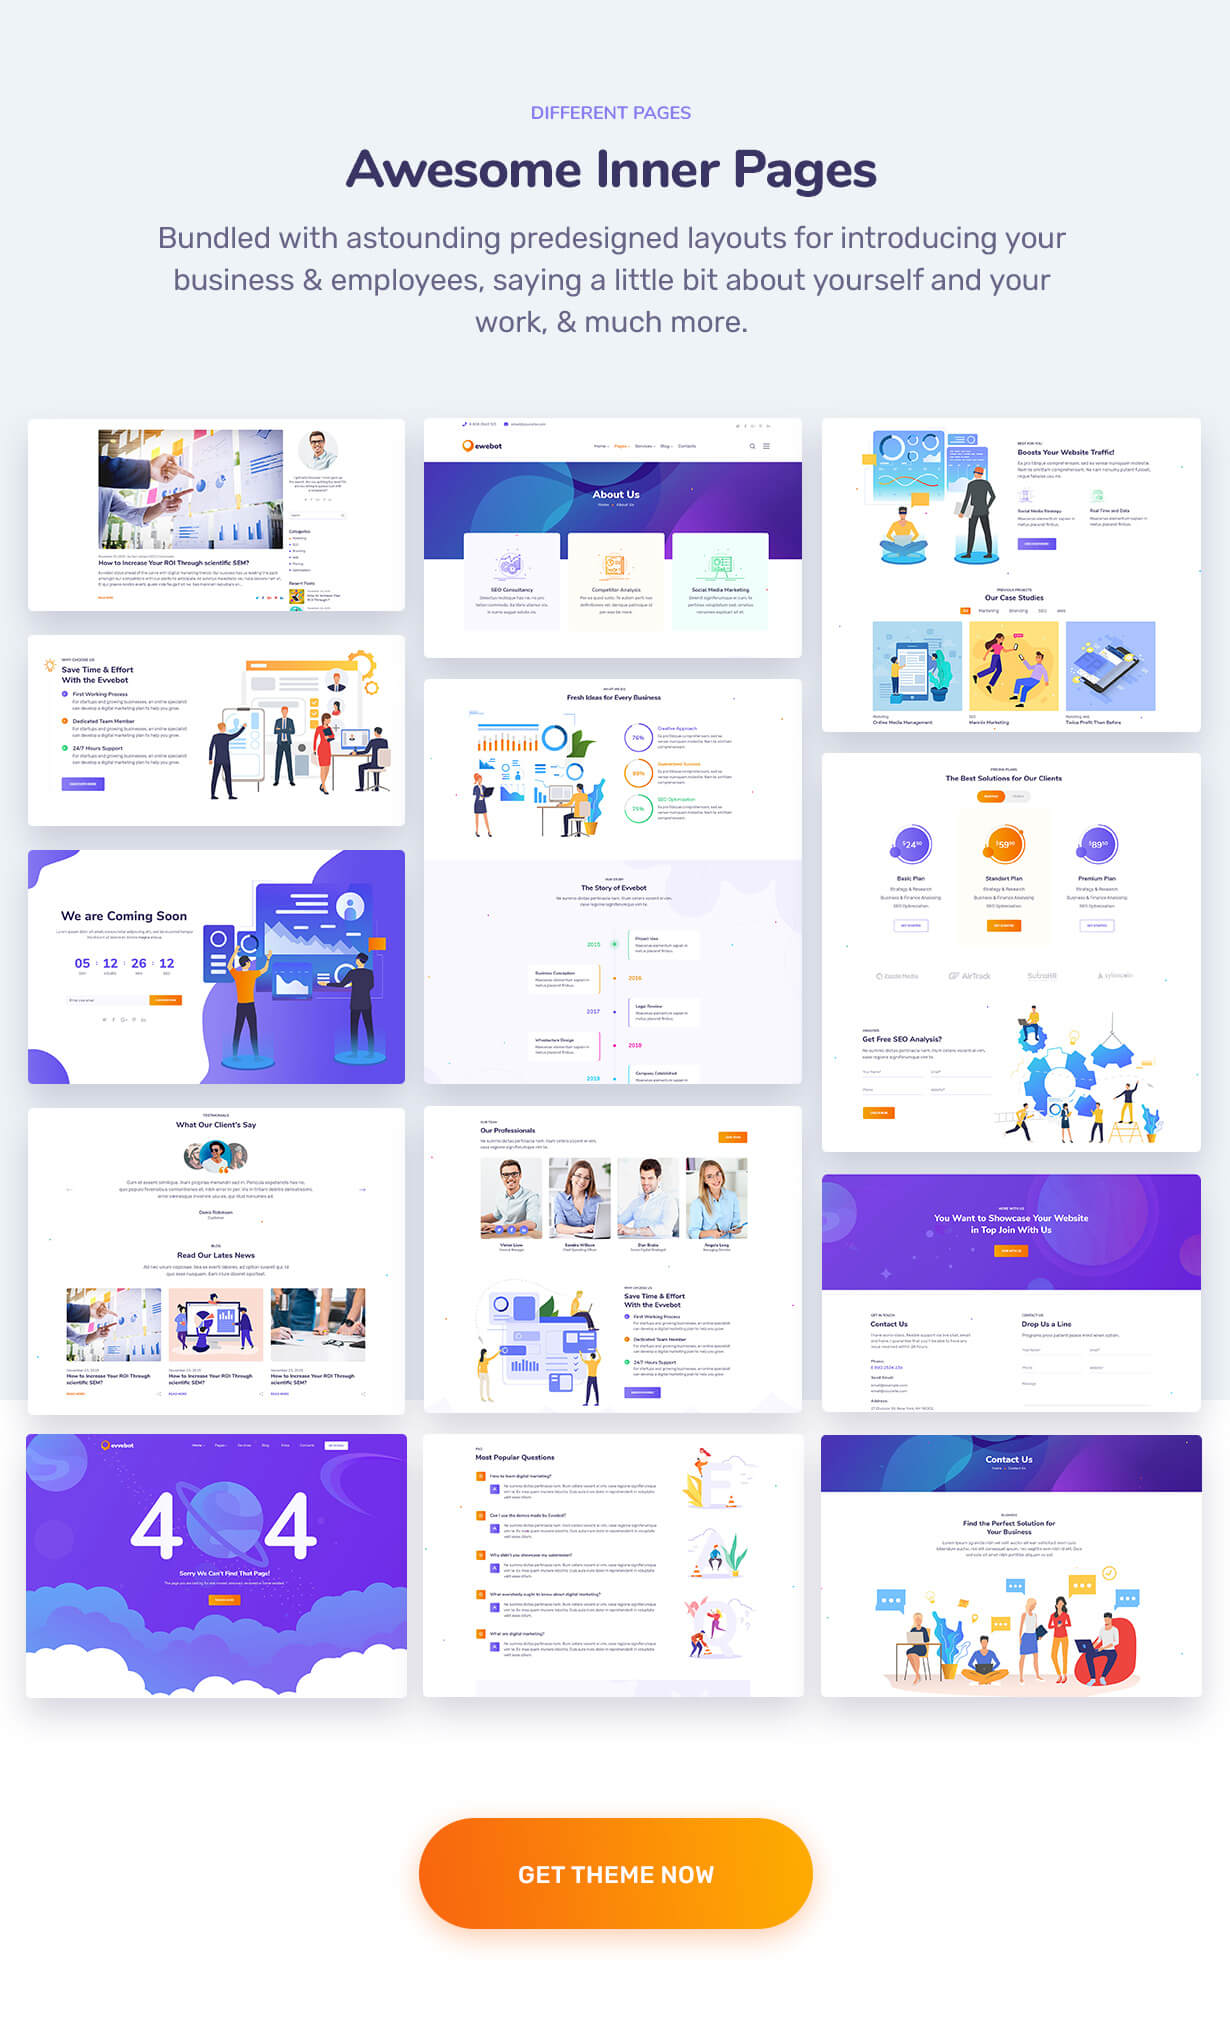 Ewebot - SEO and Marketing Agency WordPress Theme - 5